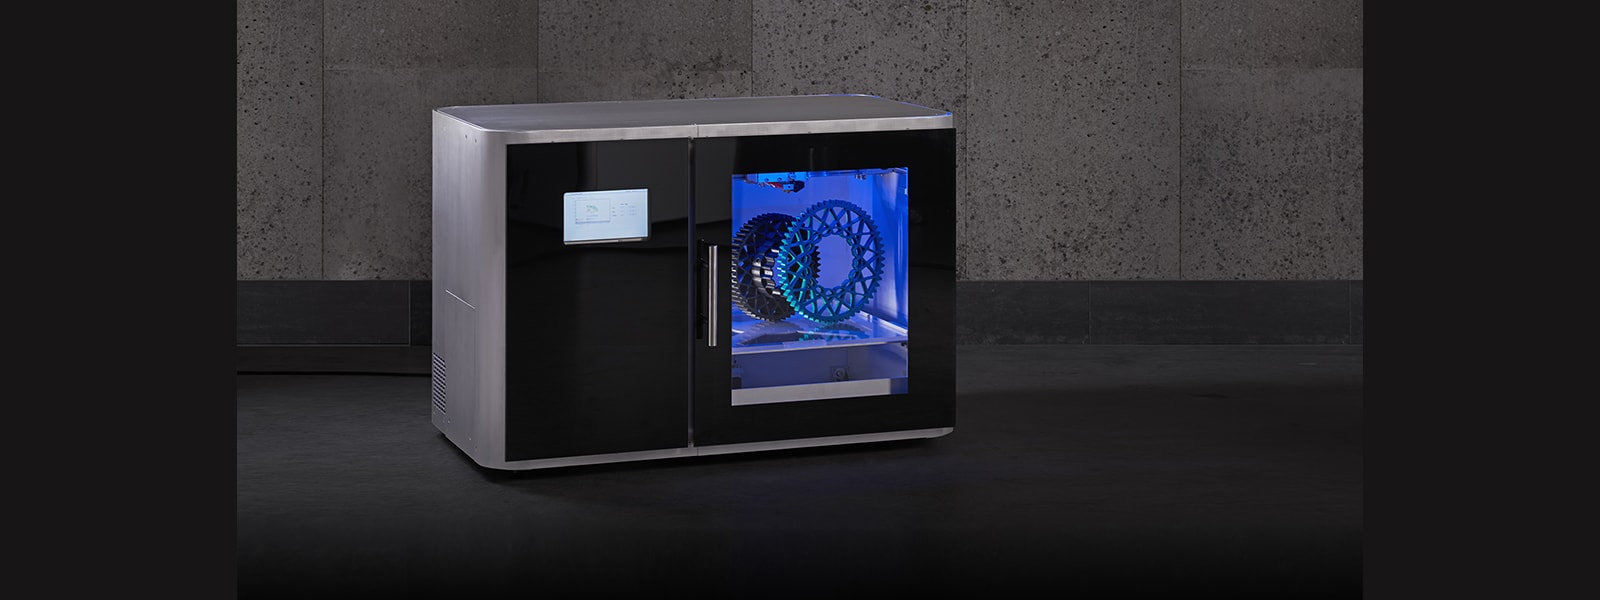 Xeed 2.0 advanced 3d printer